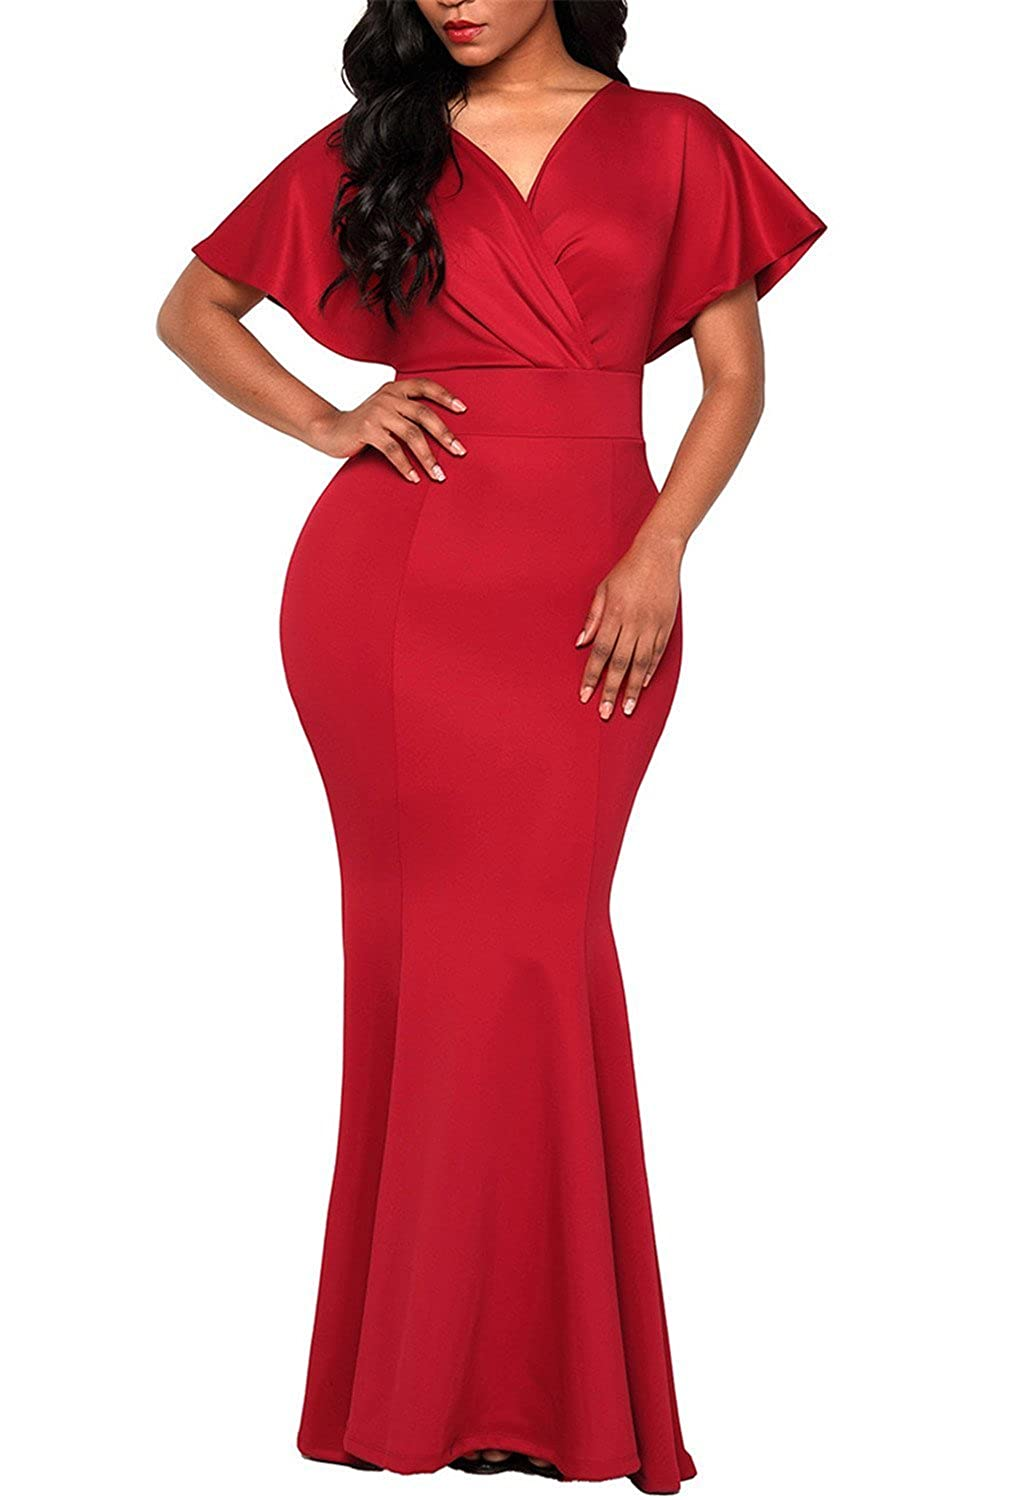 332bc5da9812d Dokotoo Womens Off Shoulder Ruffles Sleeve Gown Mermaid Evening Party Dress  at Amazon Women's Clothing store: